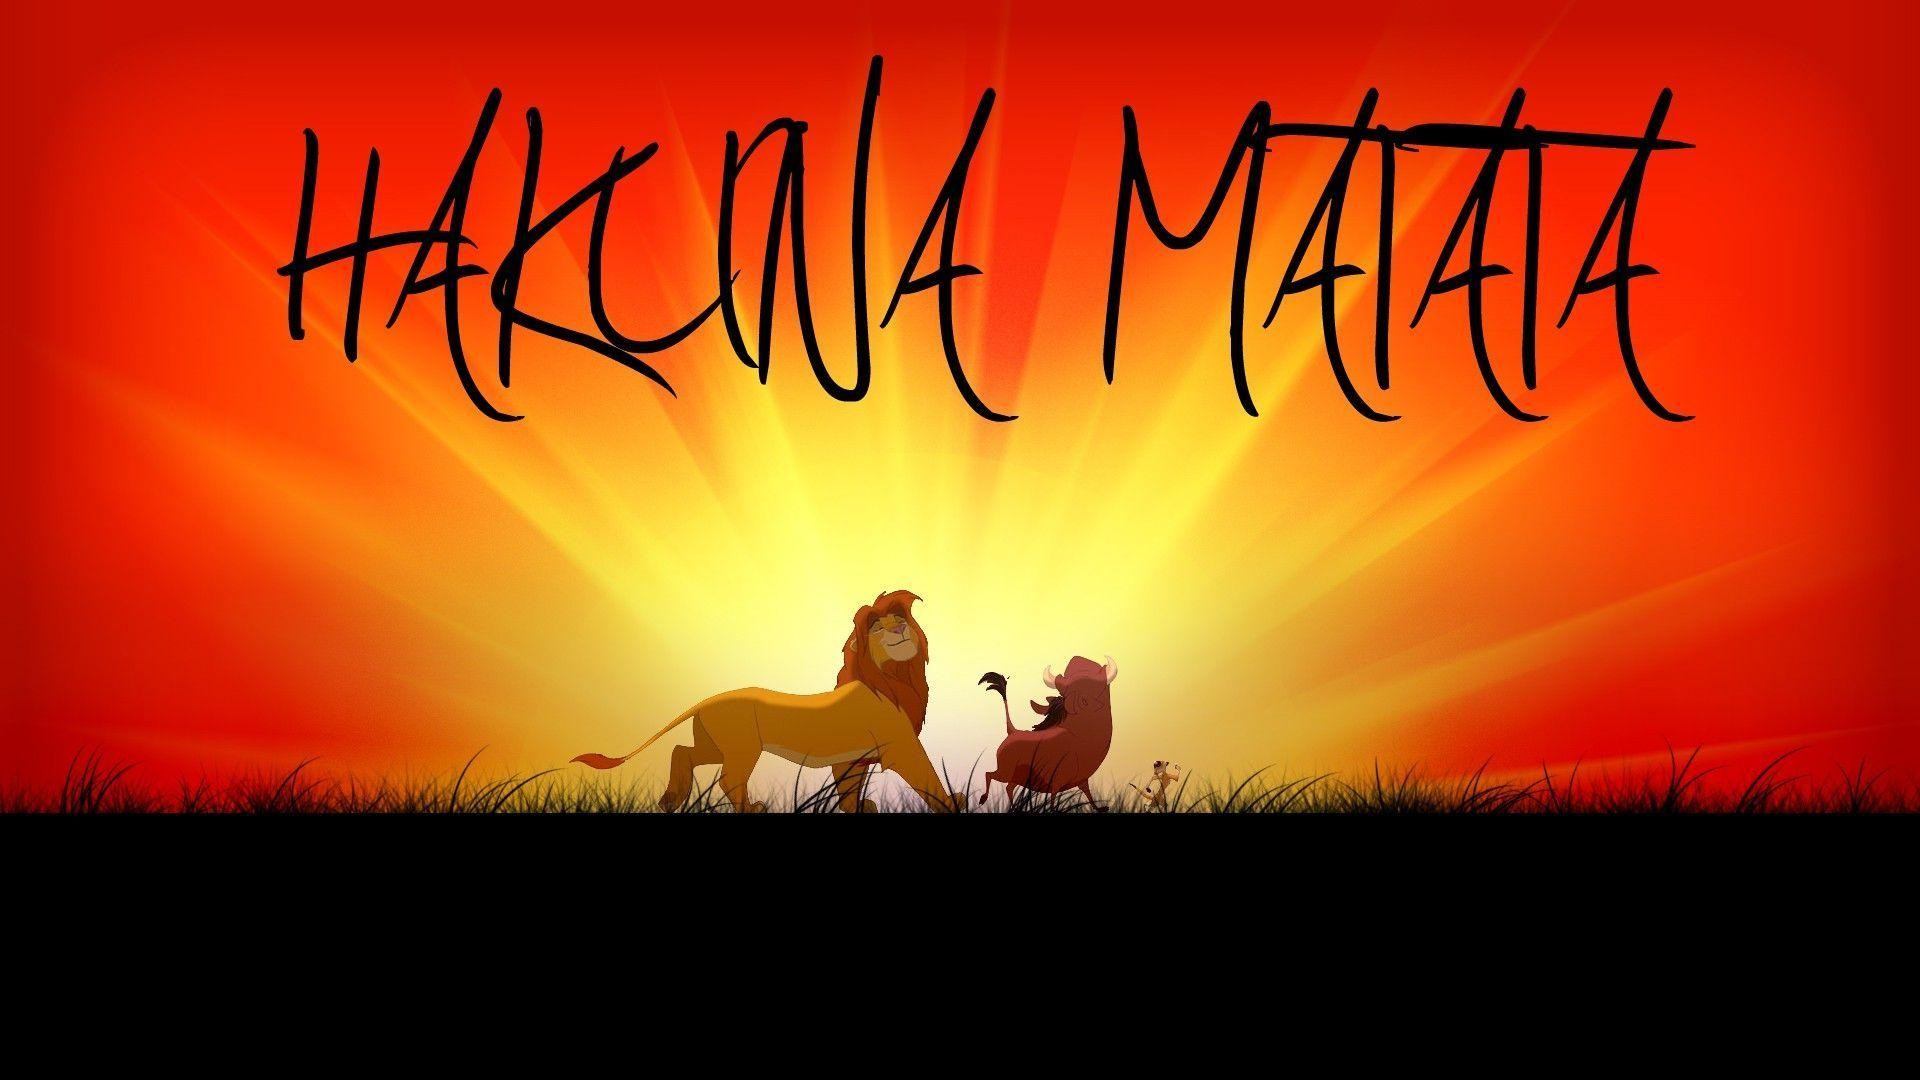 75+ hakuna matata wallpapers on wallpaperplay